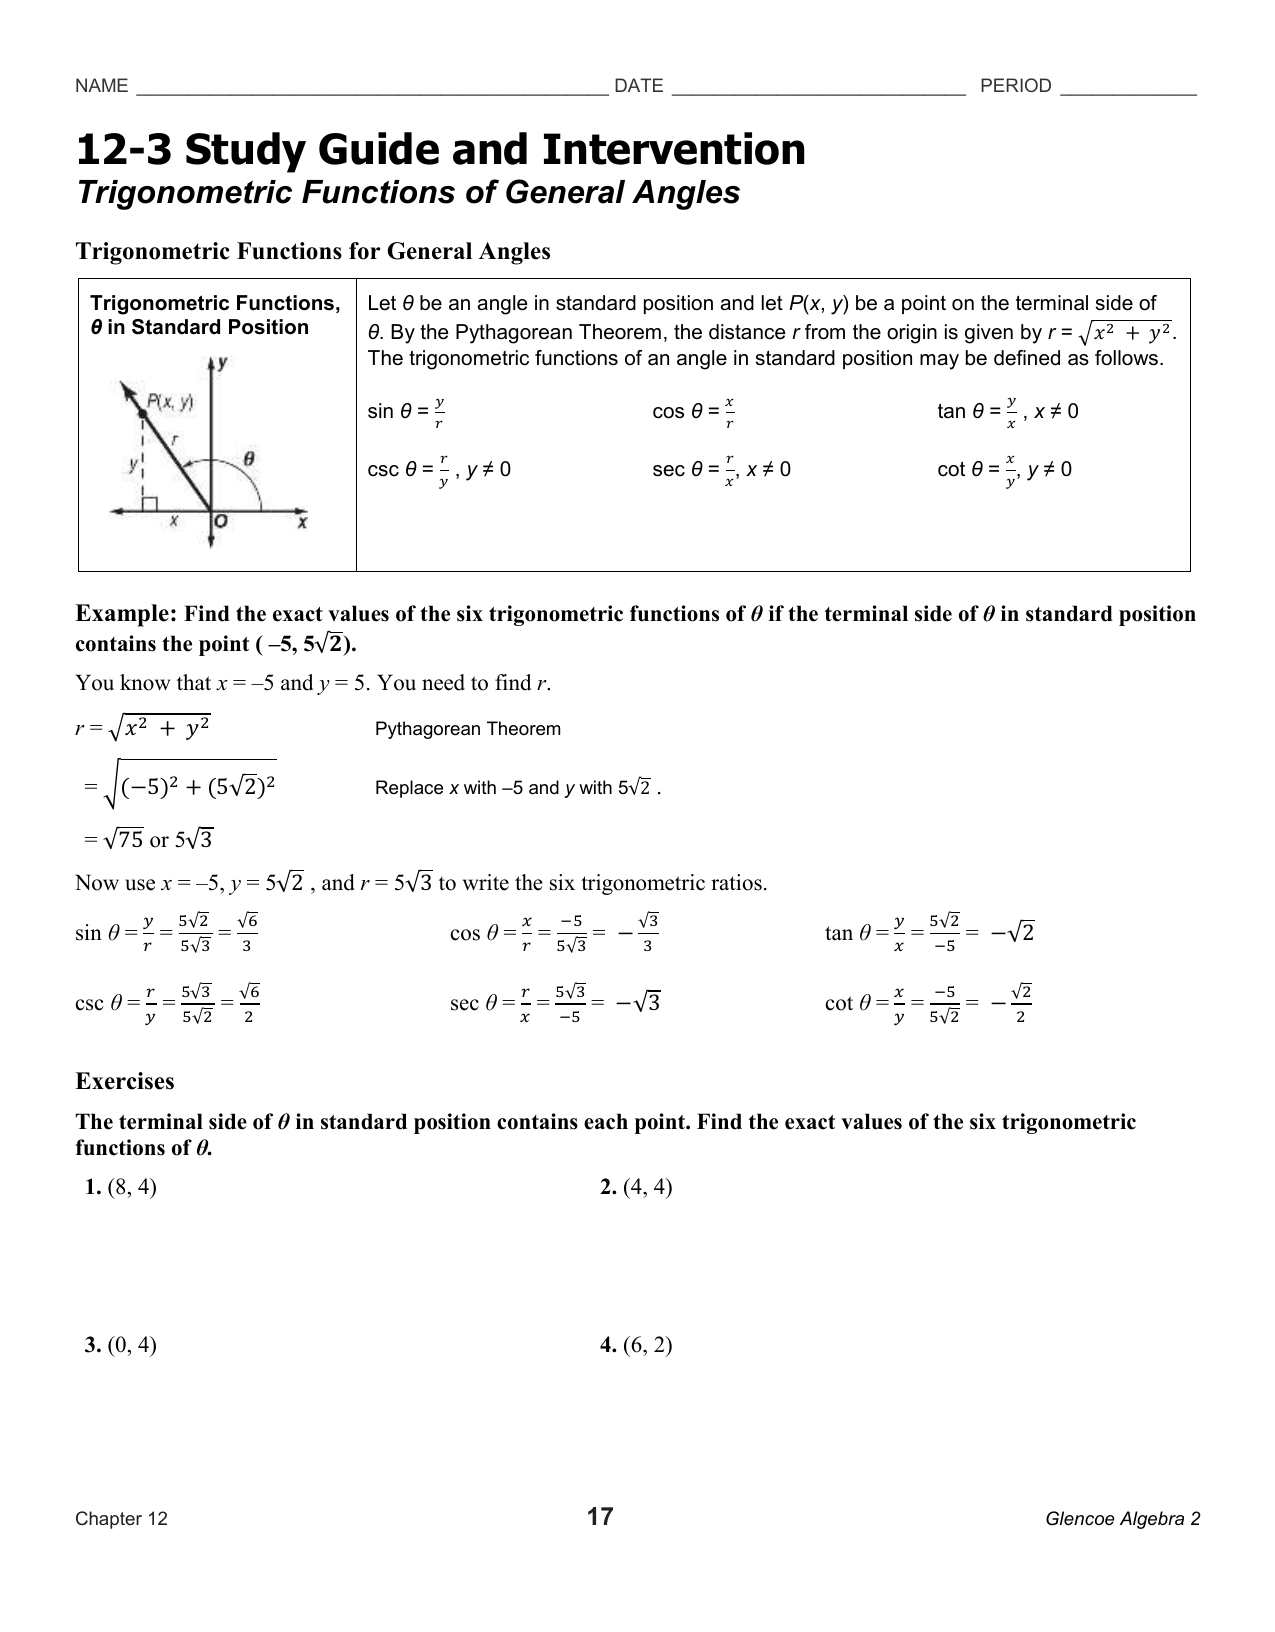 12-3 Study Guide and Intervention Trigonometric Functions of